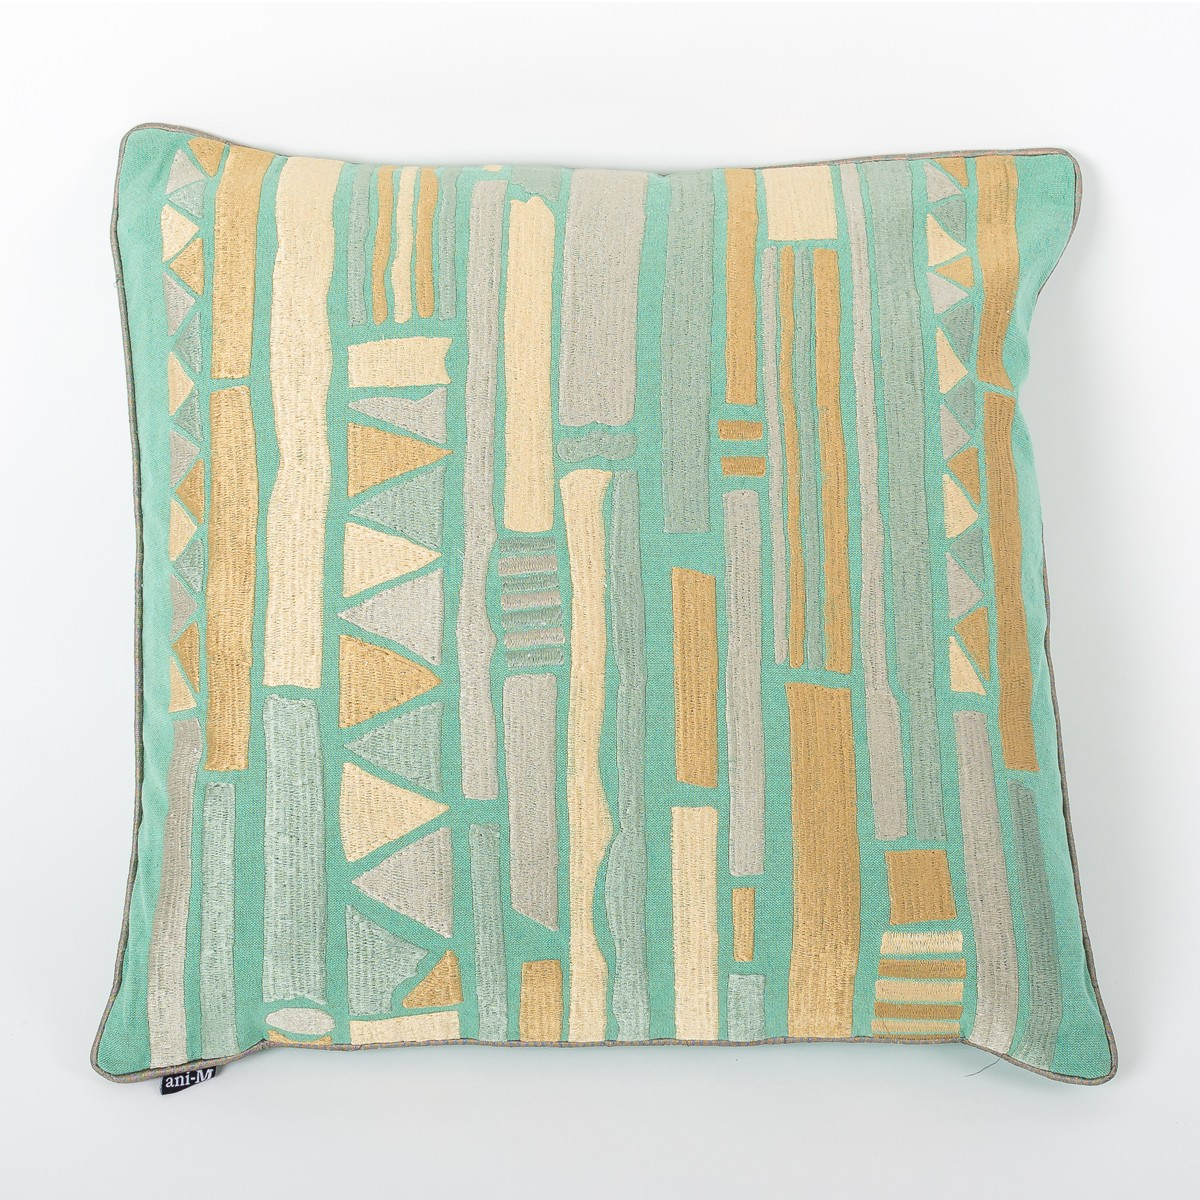 Teal Cotton Square Cushion Cover with Thread Embroidery Front